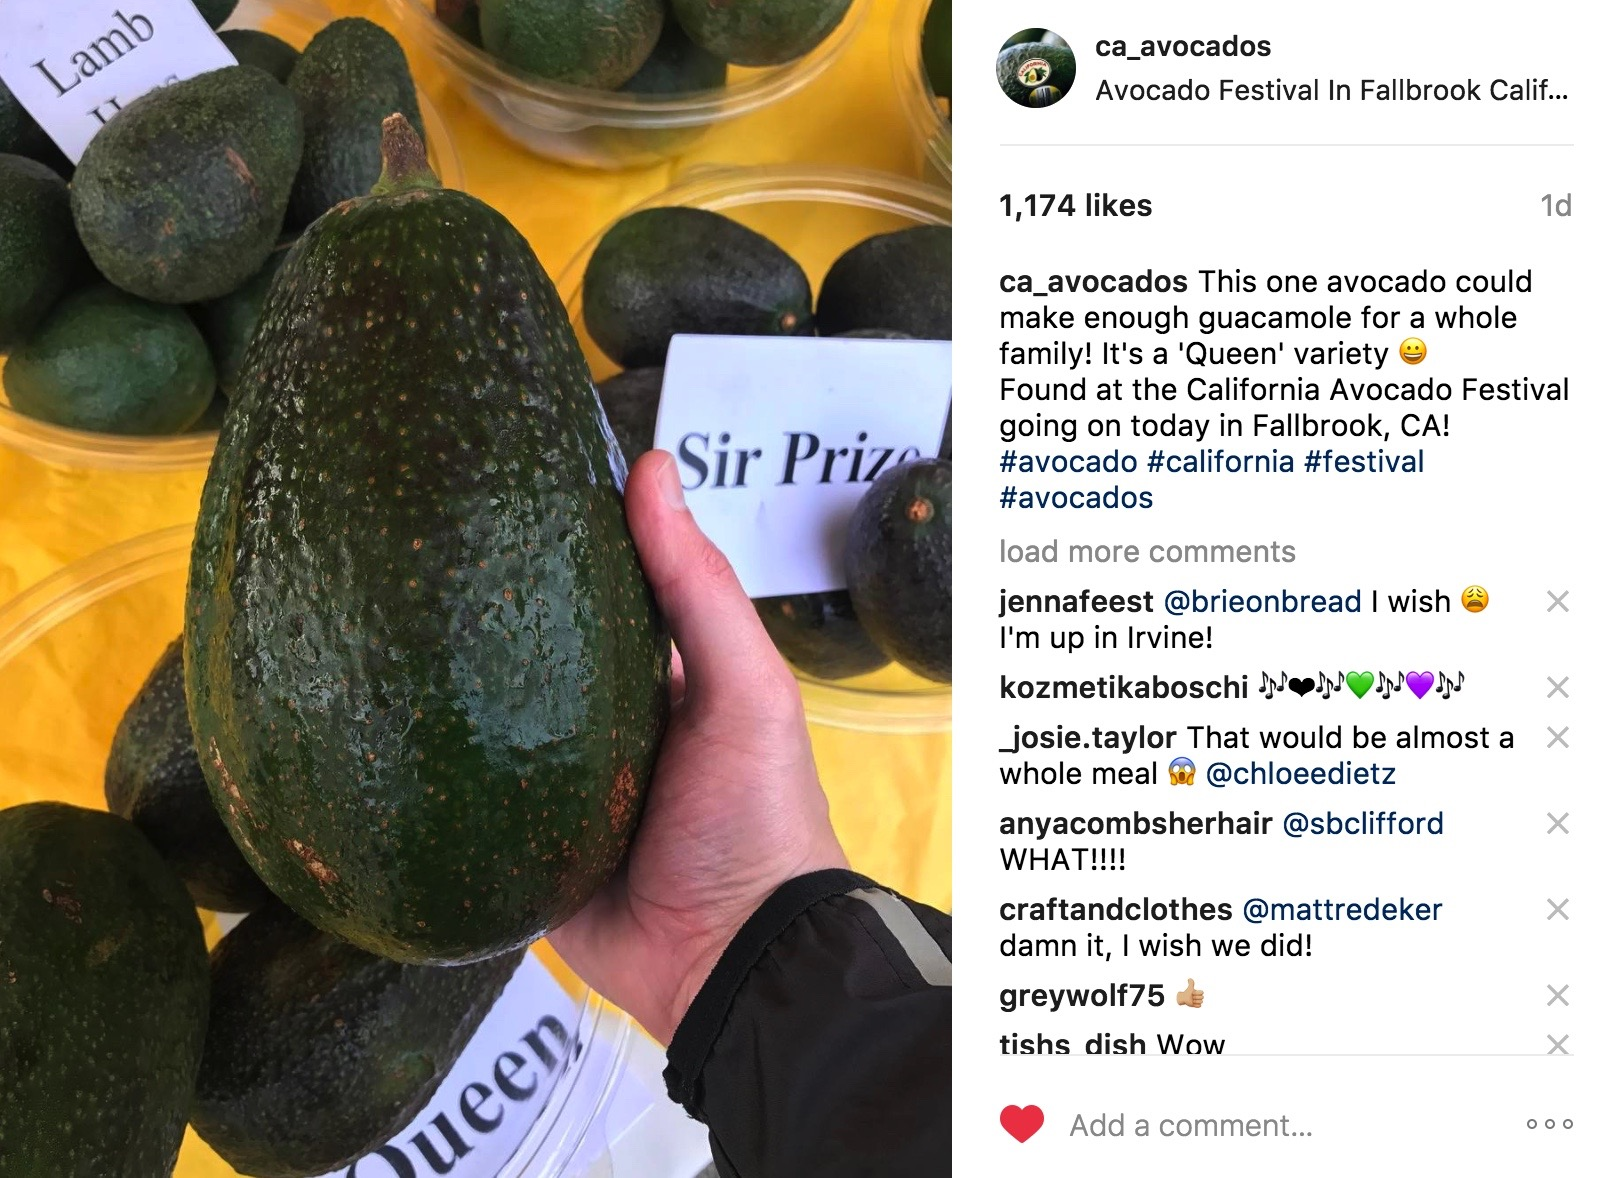 As part of its Instagram story, CAC shared a photo of this 'Queen' variety avocado as seen at the Sunshine Properties booth.